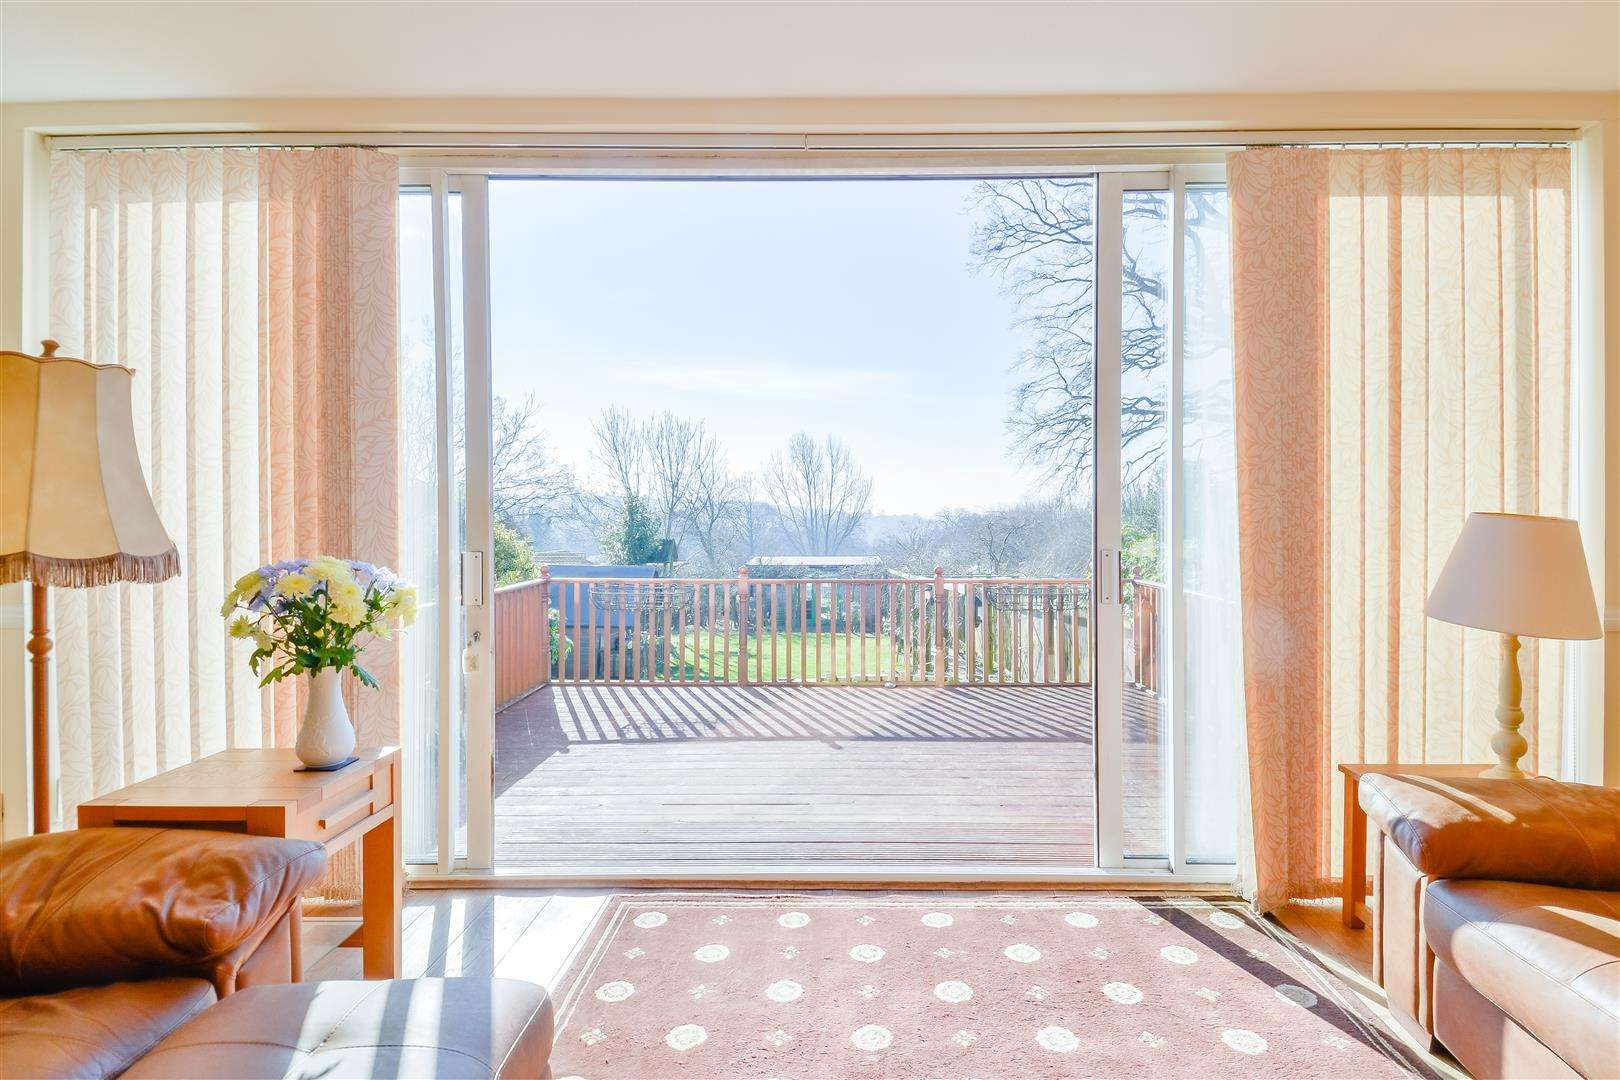 4 bed for sale in Merry Hill Road, Bushey - (Property Image 3)